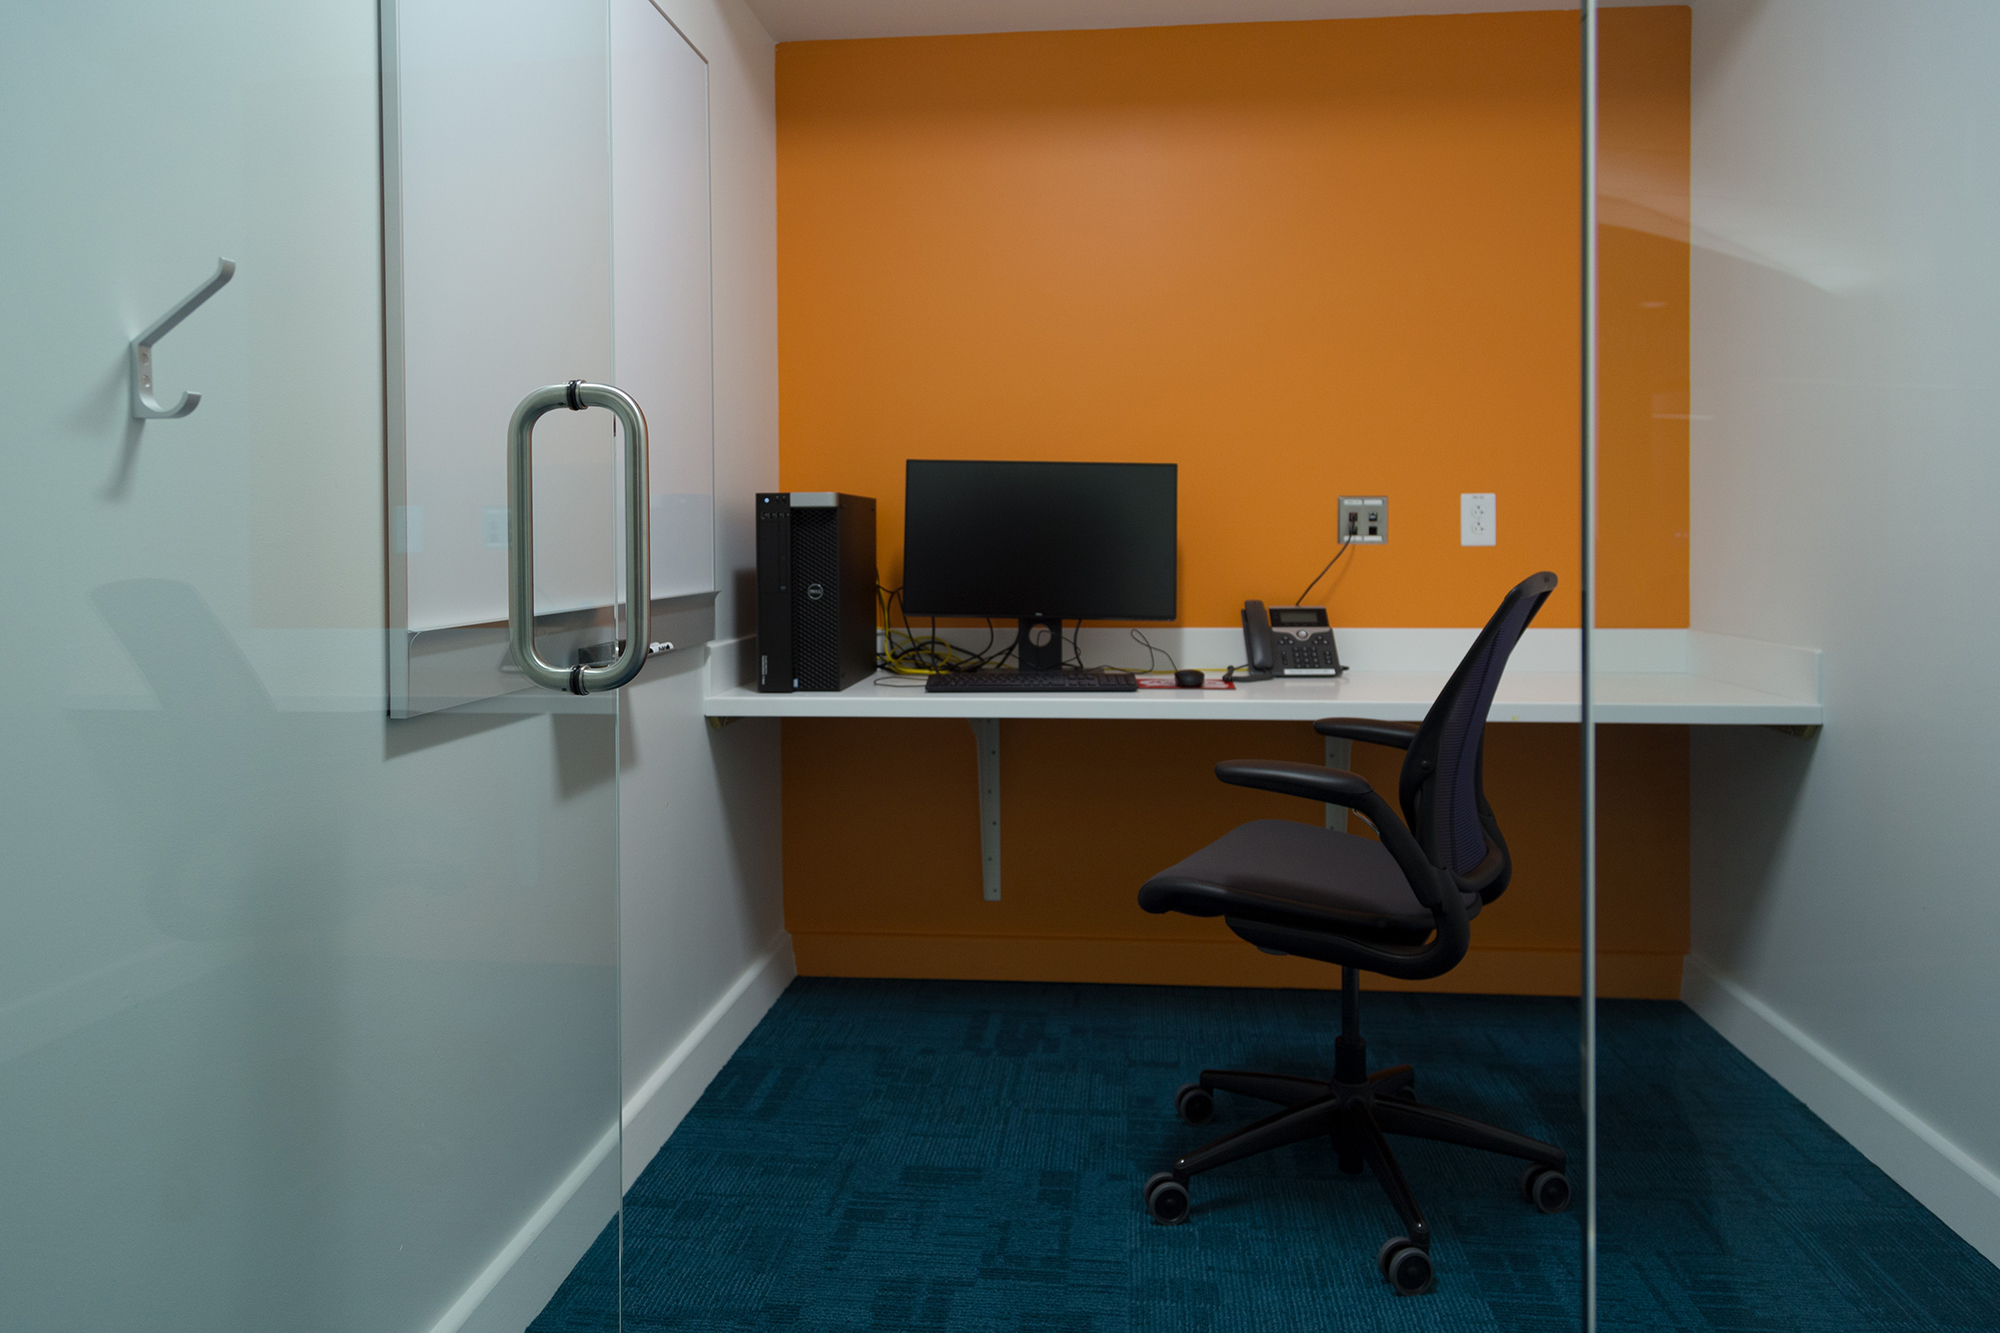 A small room with a desktop computer, telephone, desk, chair, and whiteboard